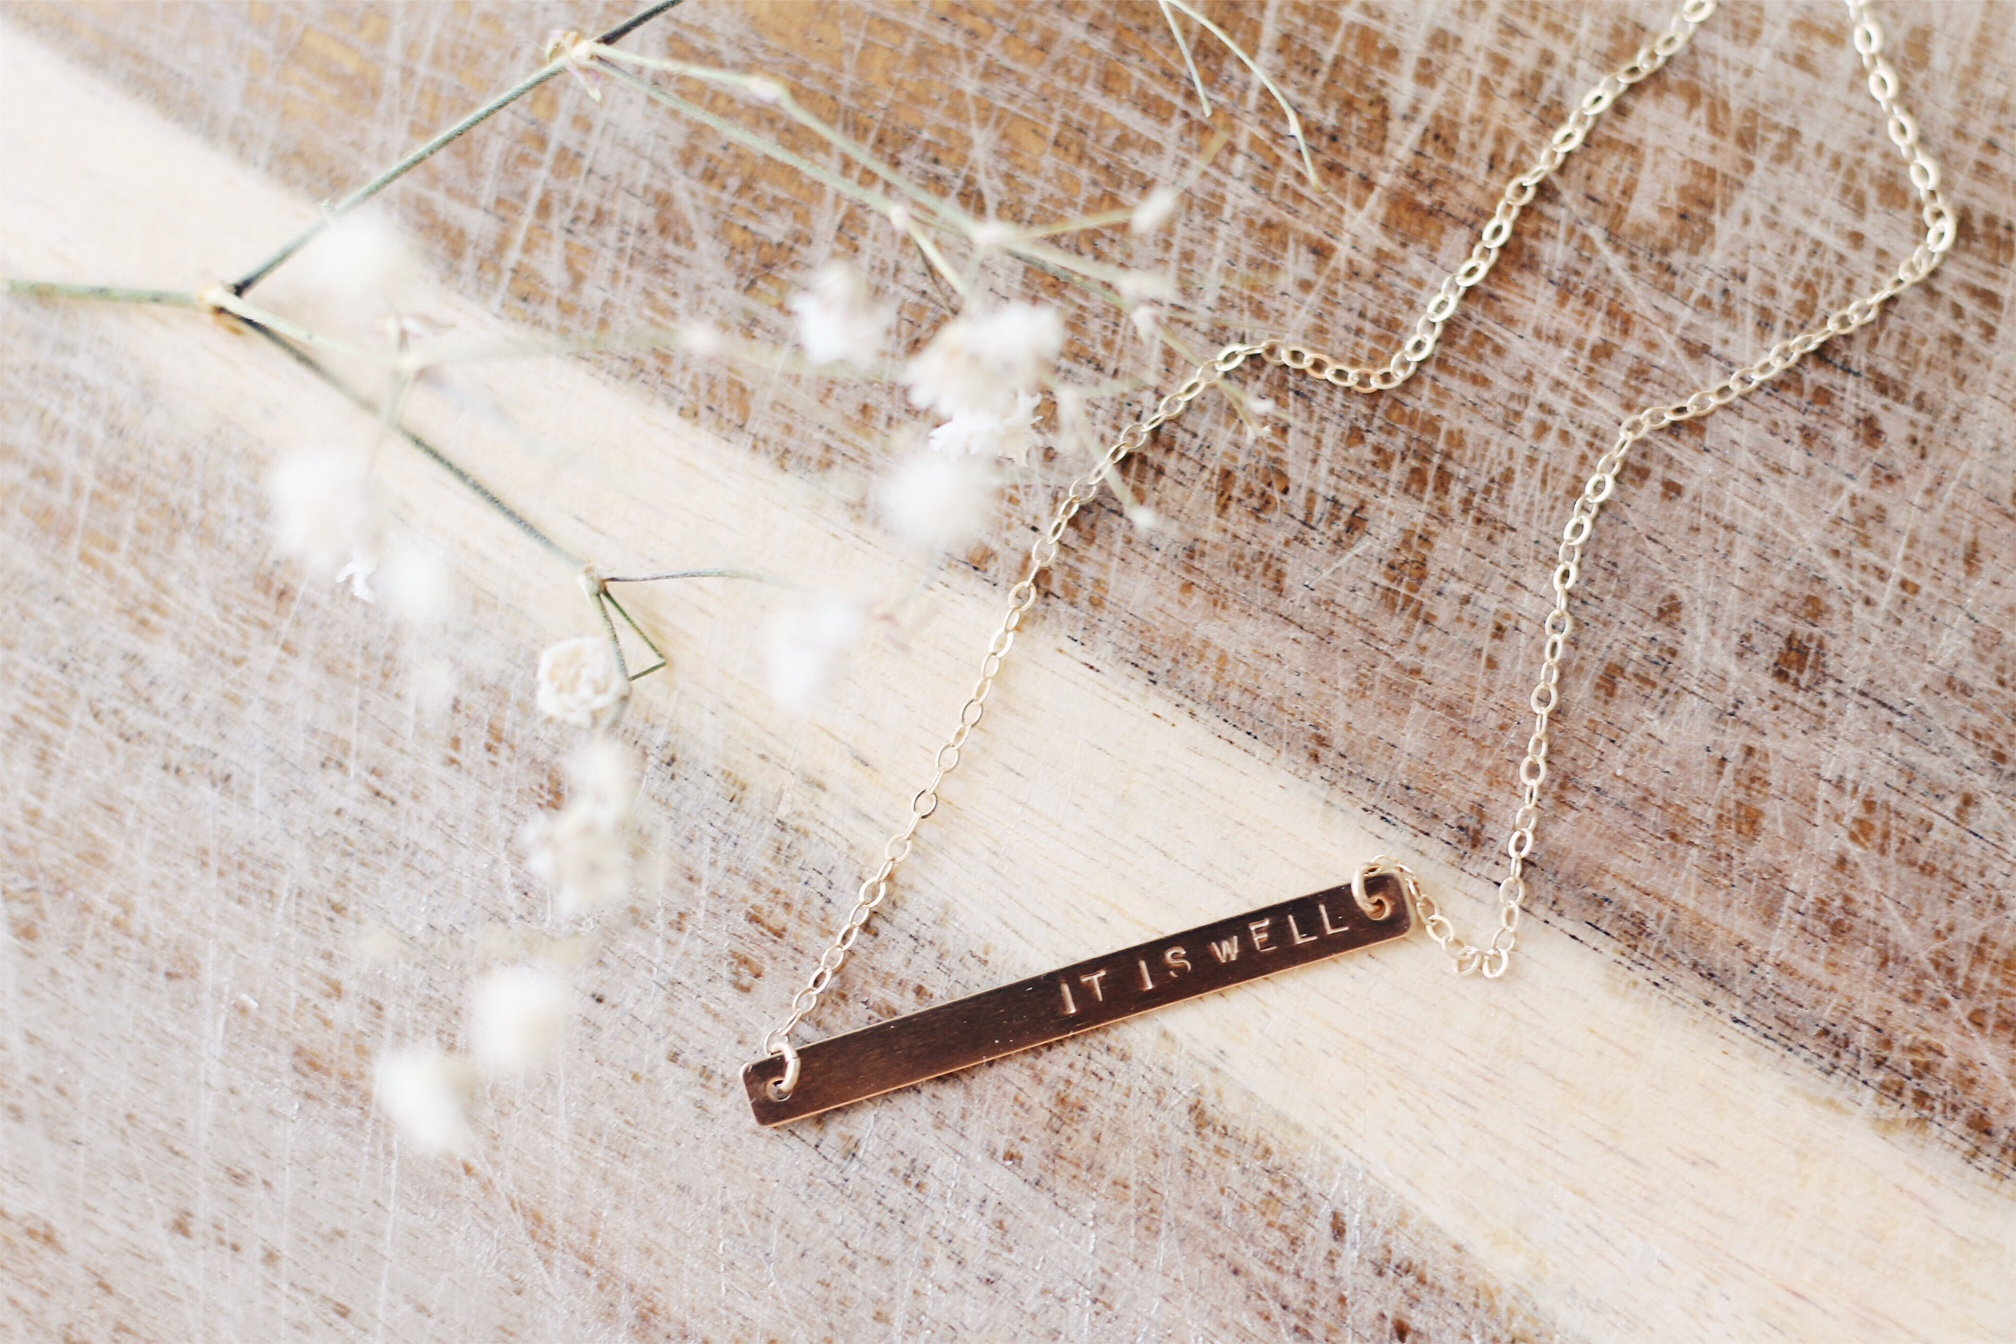 Elle Lane Designs skinny gold bar necklace, Mother's Day gift ideas | Feathers and Roots